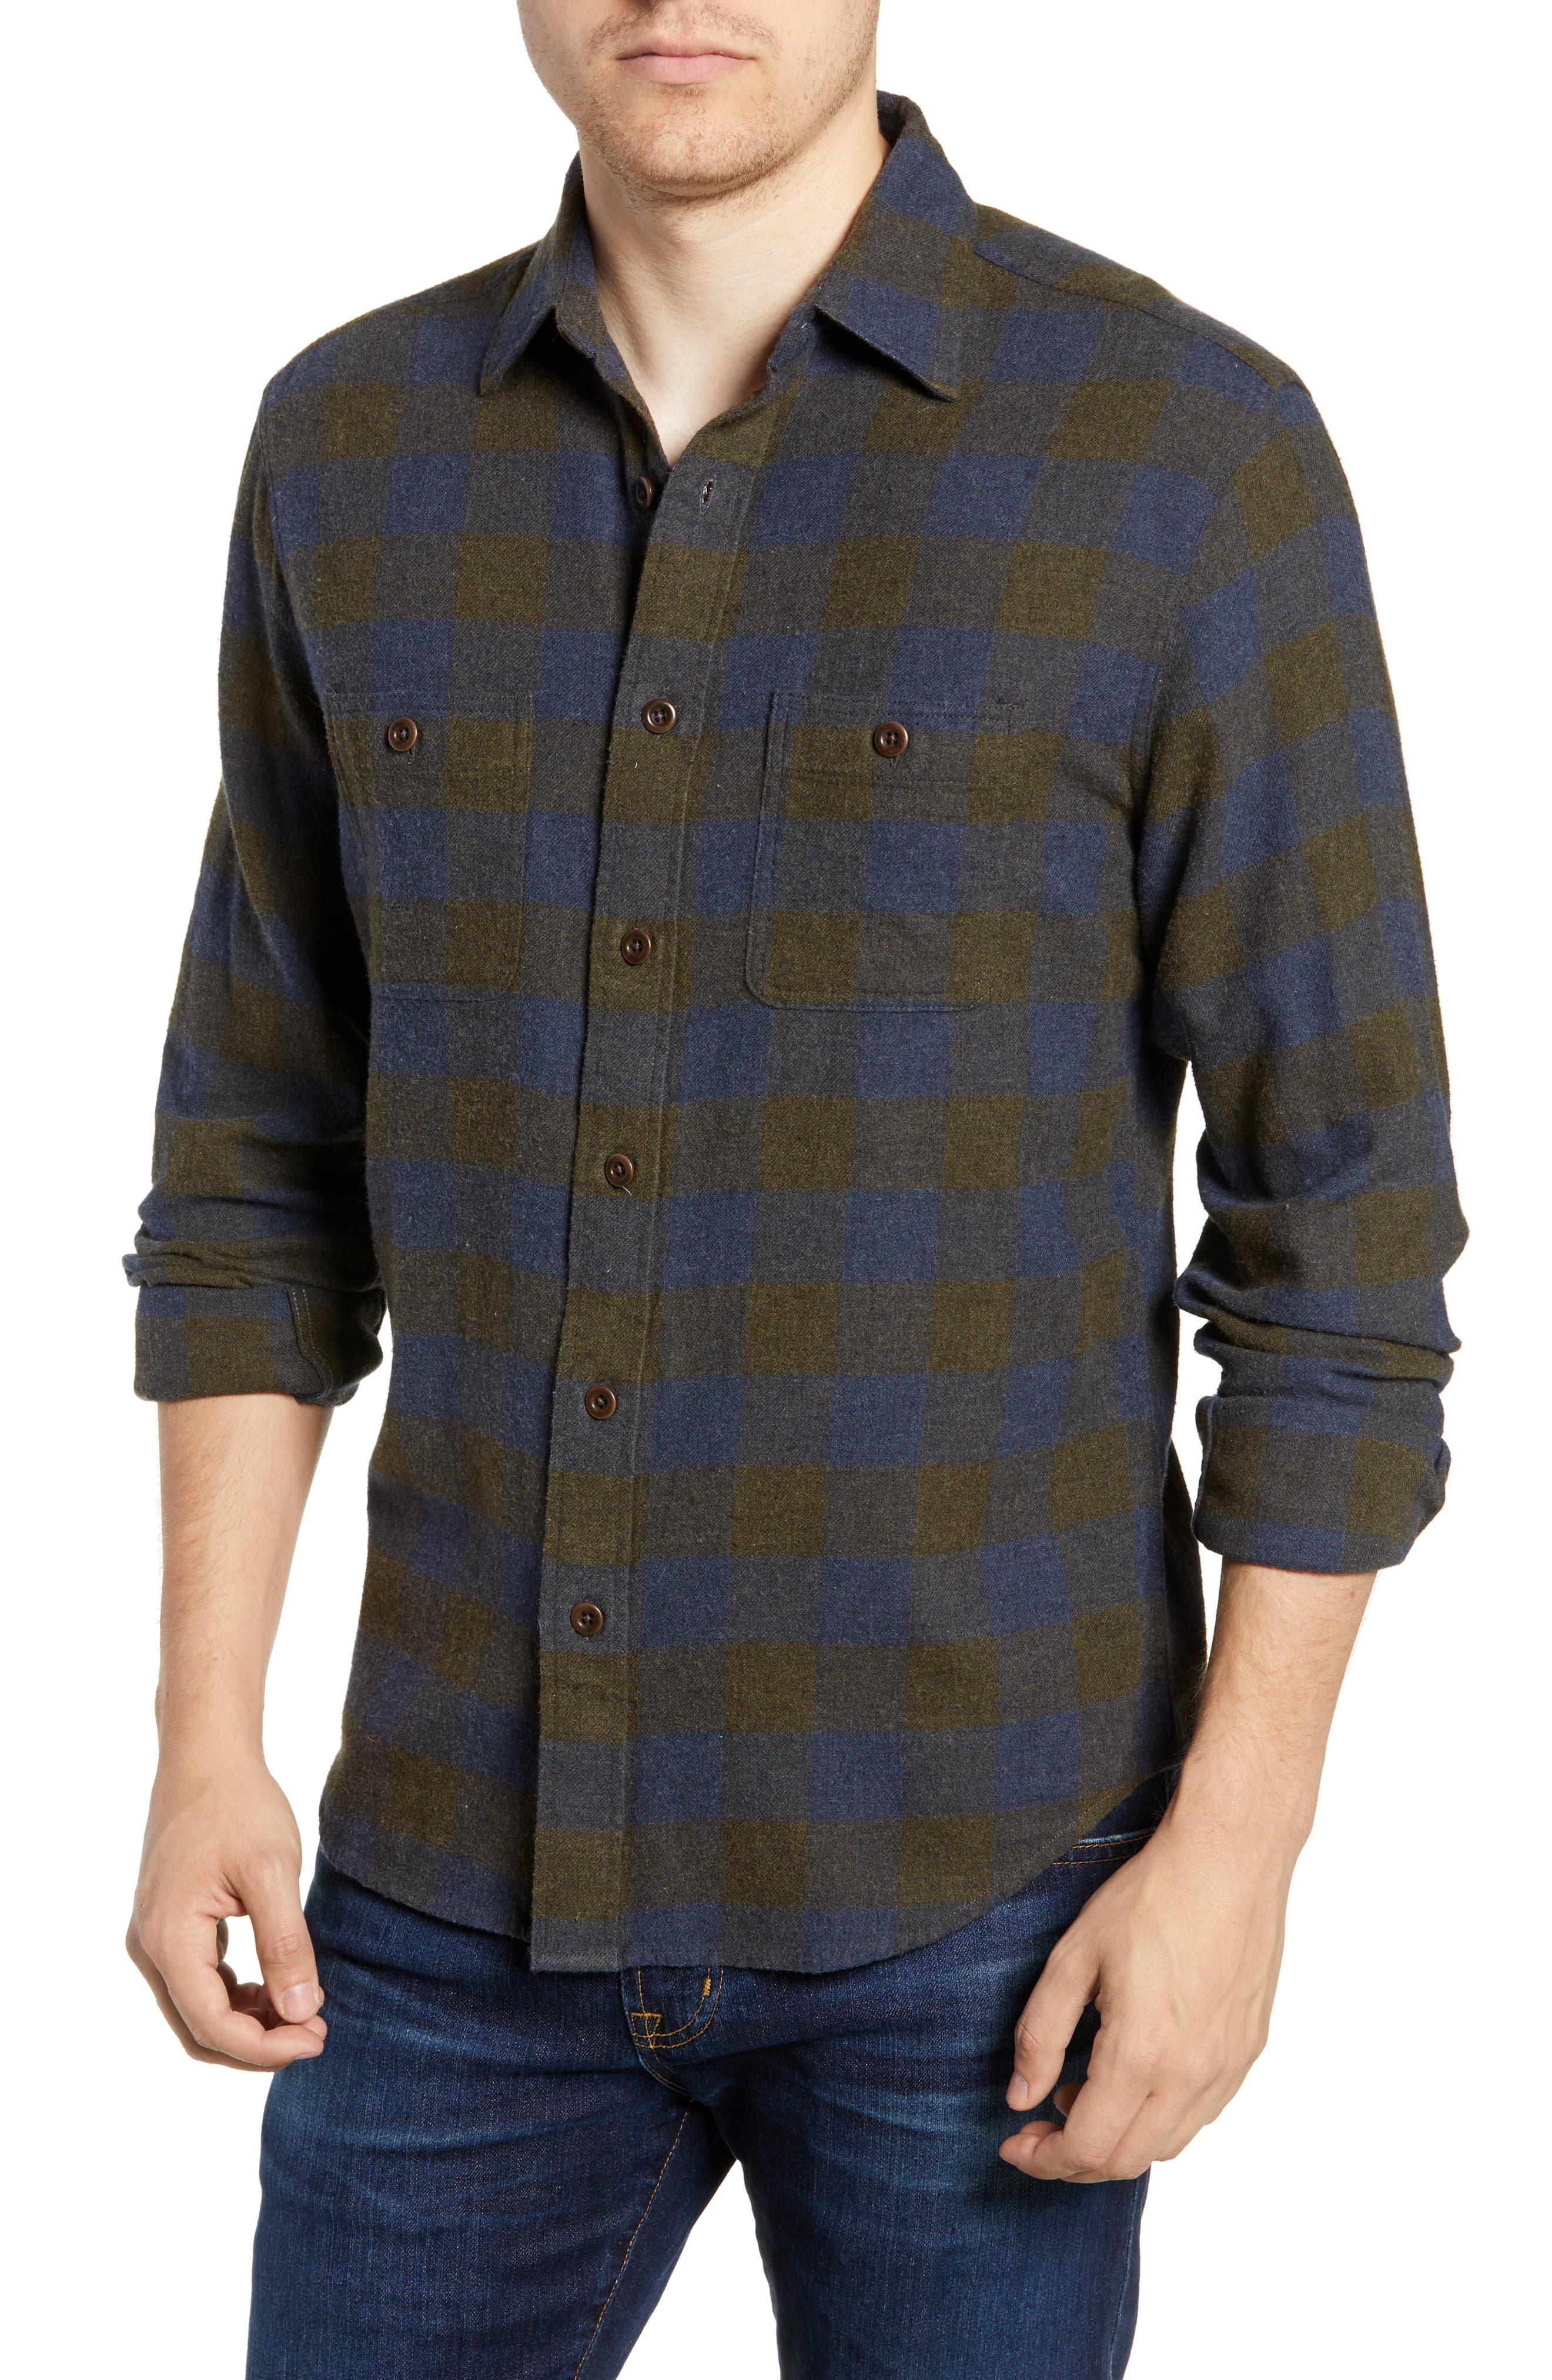 Seasons Check Flannel Shirt,                         Main,                         color, NAVY OLIVE BUFFALO